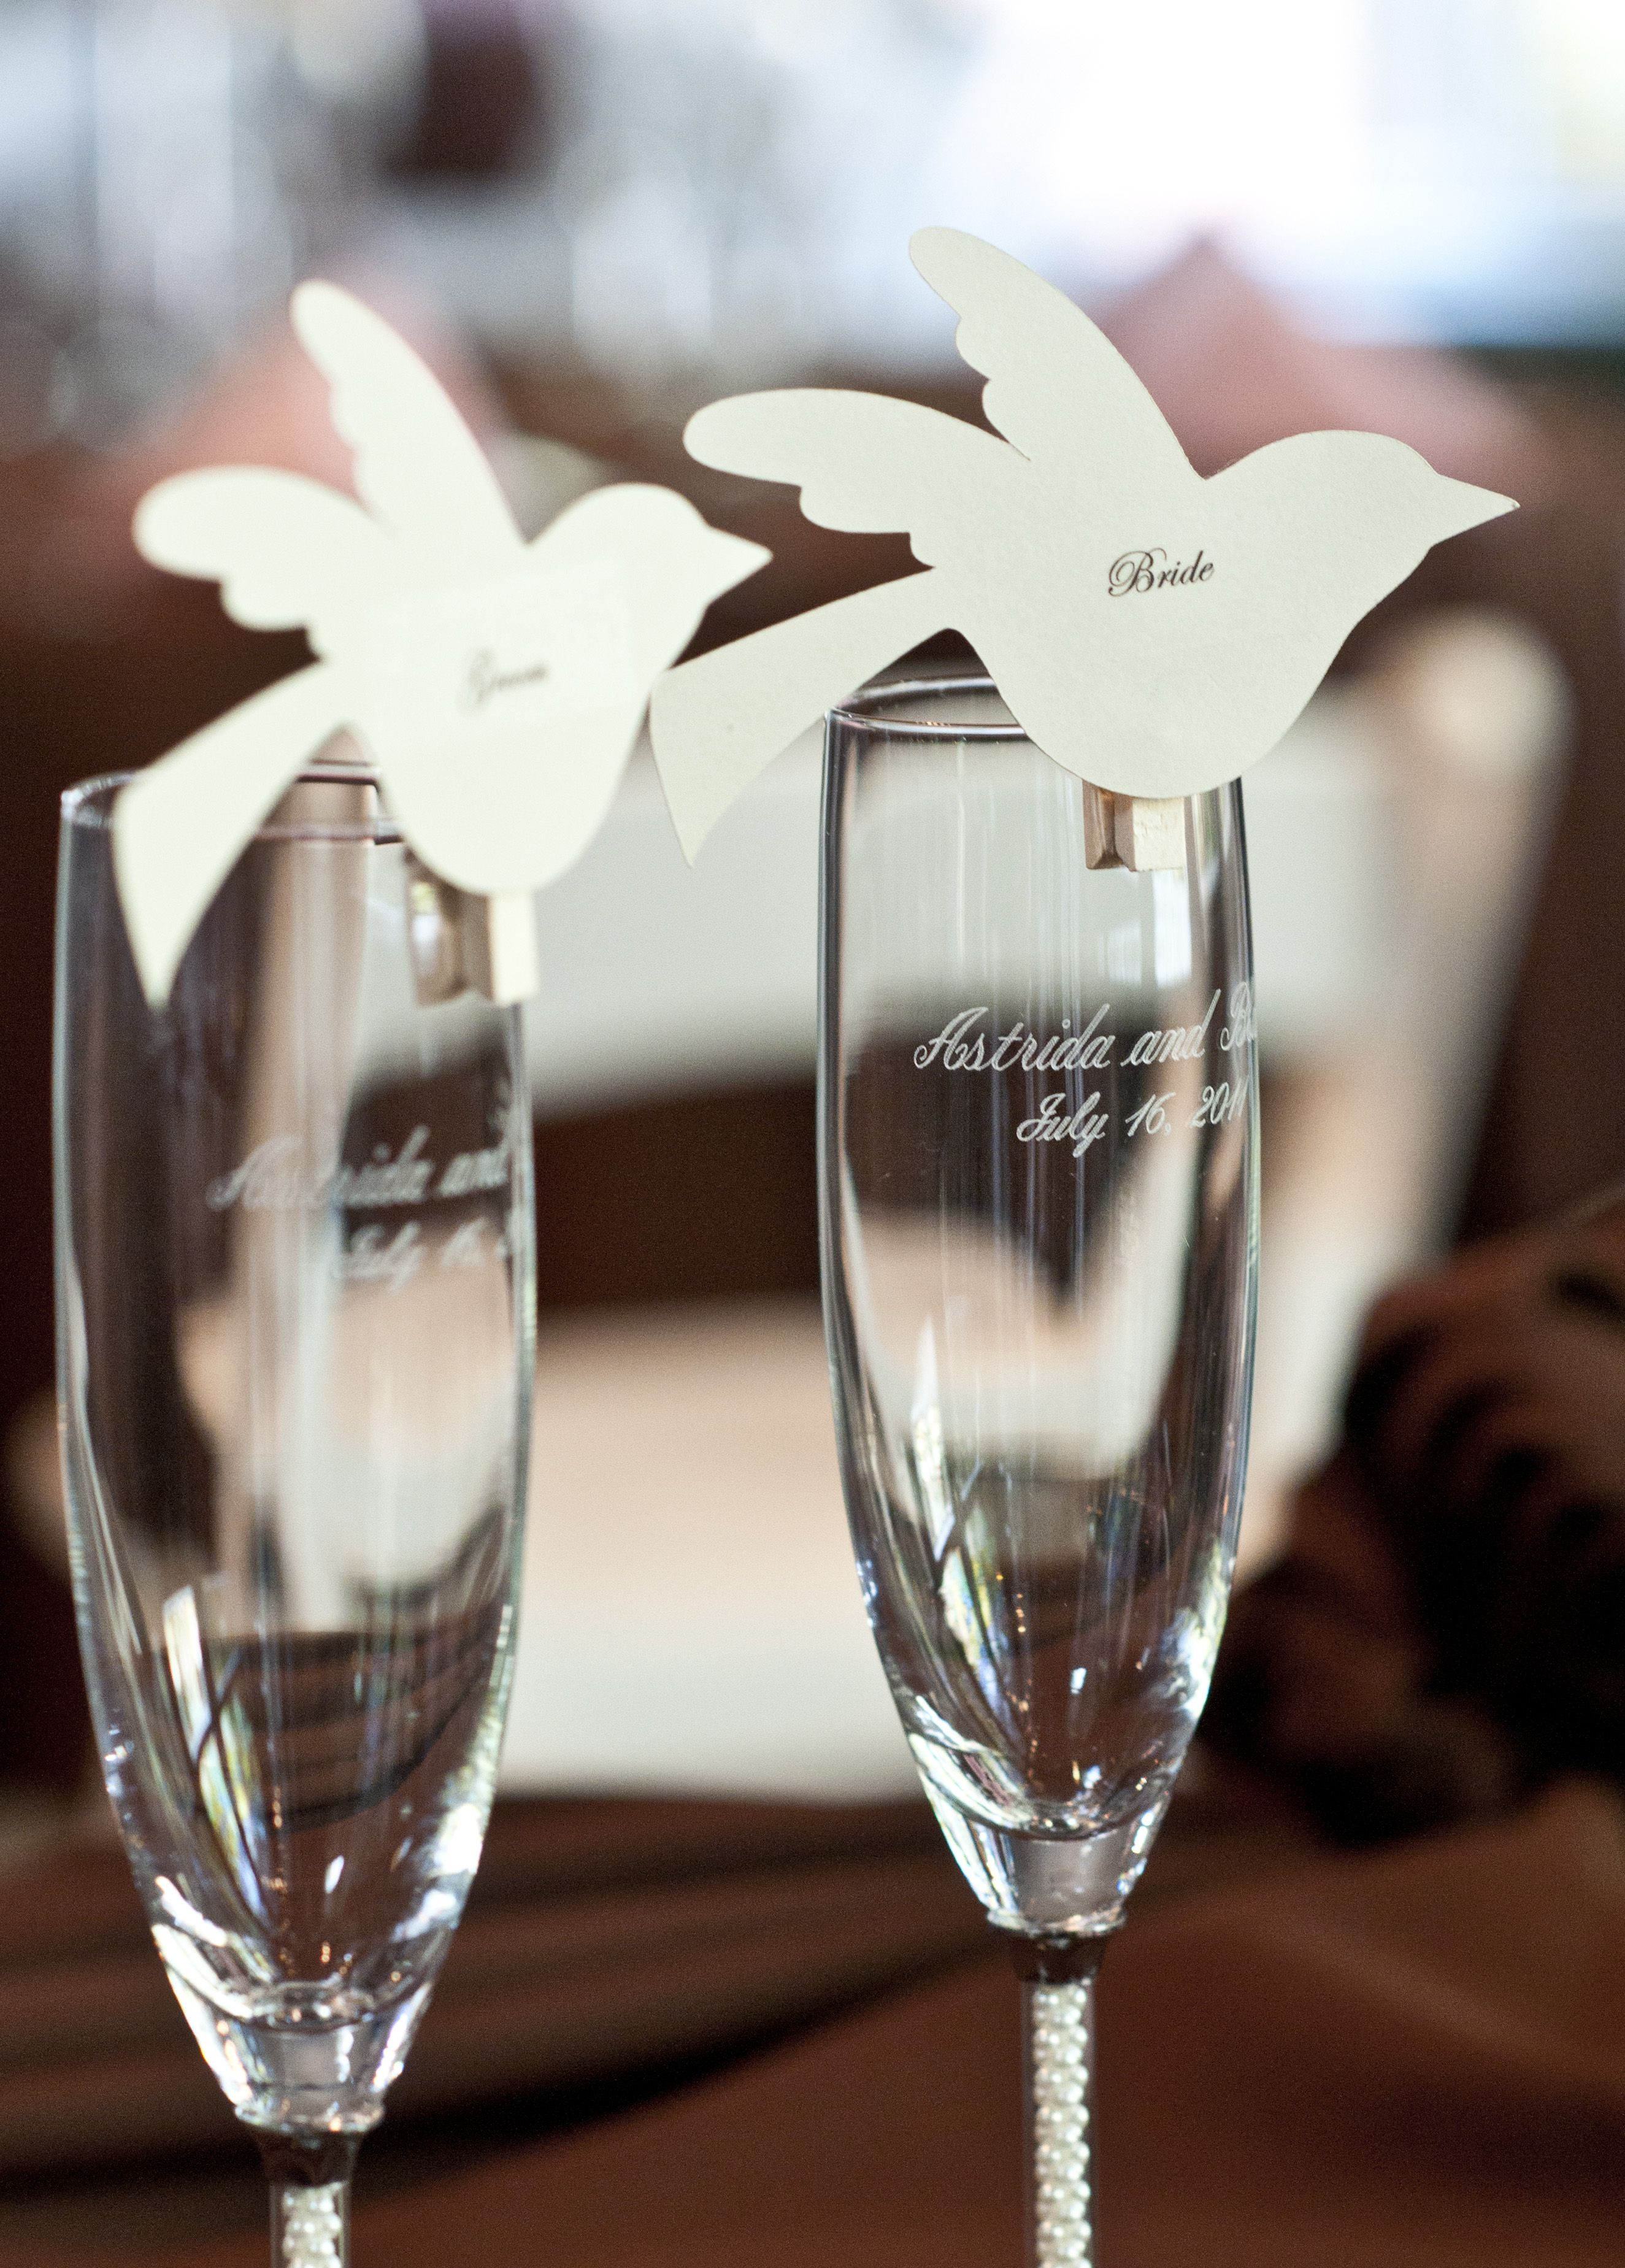 Easy and cute DIY place cards for a wedding. I used a Cricut machine to cut out birds then printed the guests names onto clear return address labels and attached them to the cut out. Then all you need to do is hot glue them to mini wooden clips. Simply clip them to the rim of the glass and you're good to go! Looks cute and they're easy to spot. **Photo by the fantastic Samantha Randall Photography. See more of her amazing work at http://www.samantharandall.com